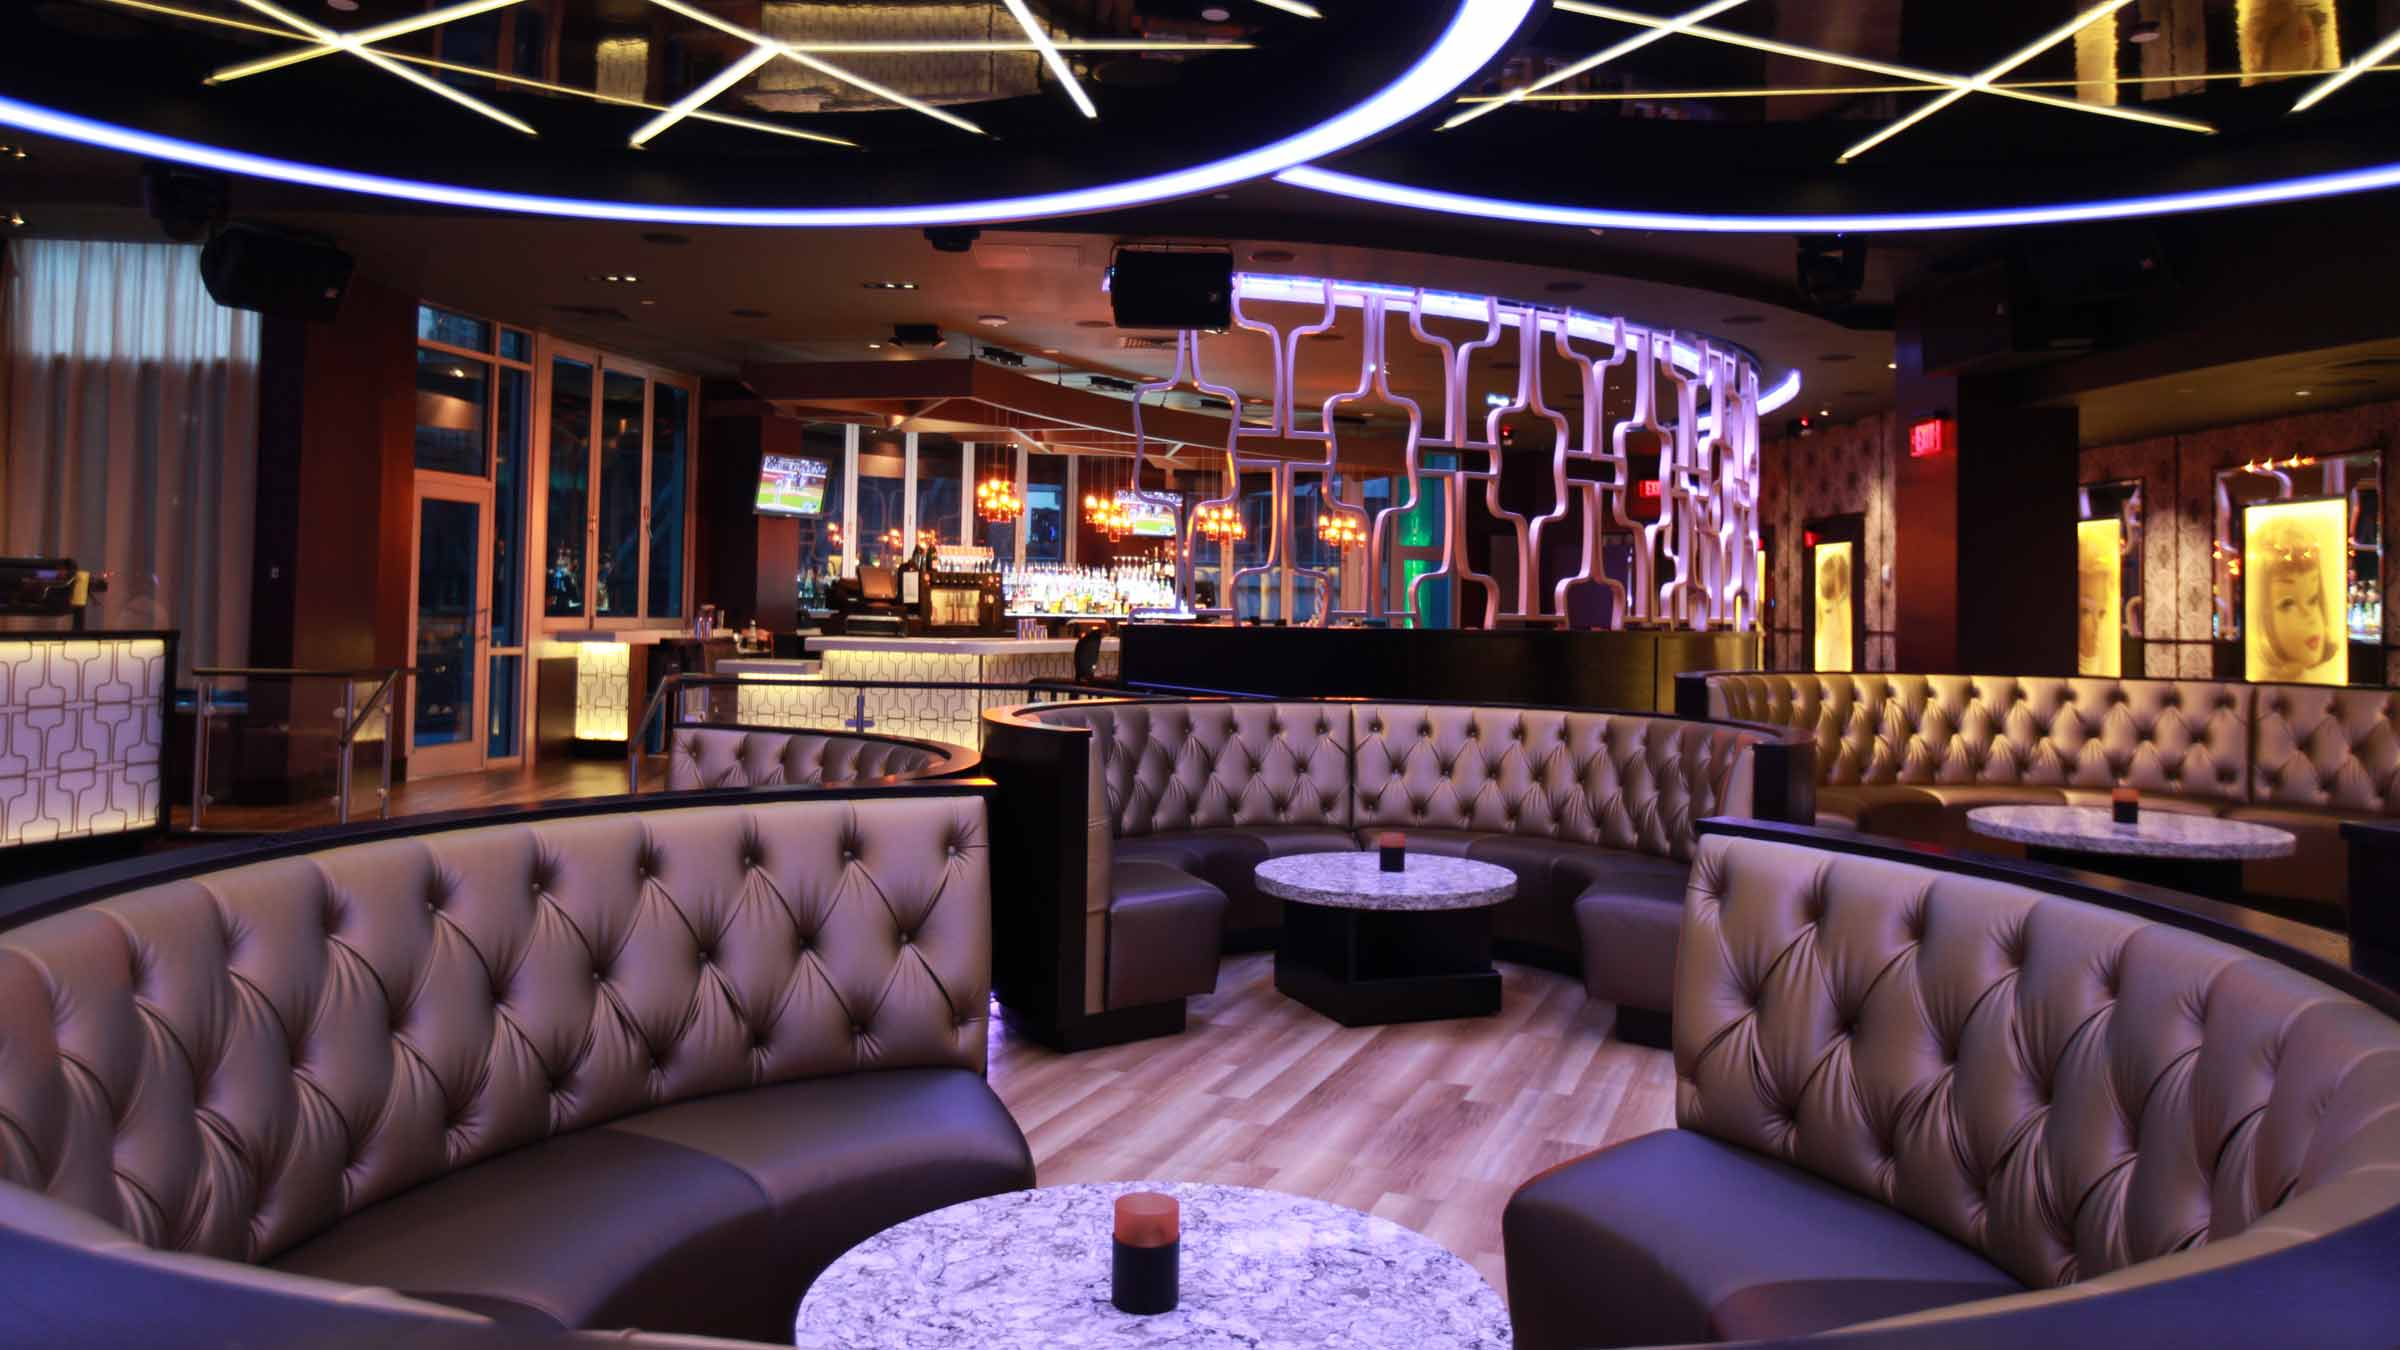 Restaurant hotel nightclub design by bigtime design for Lounge pictures designs